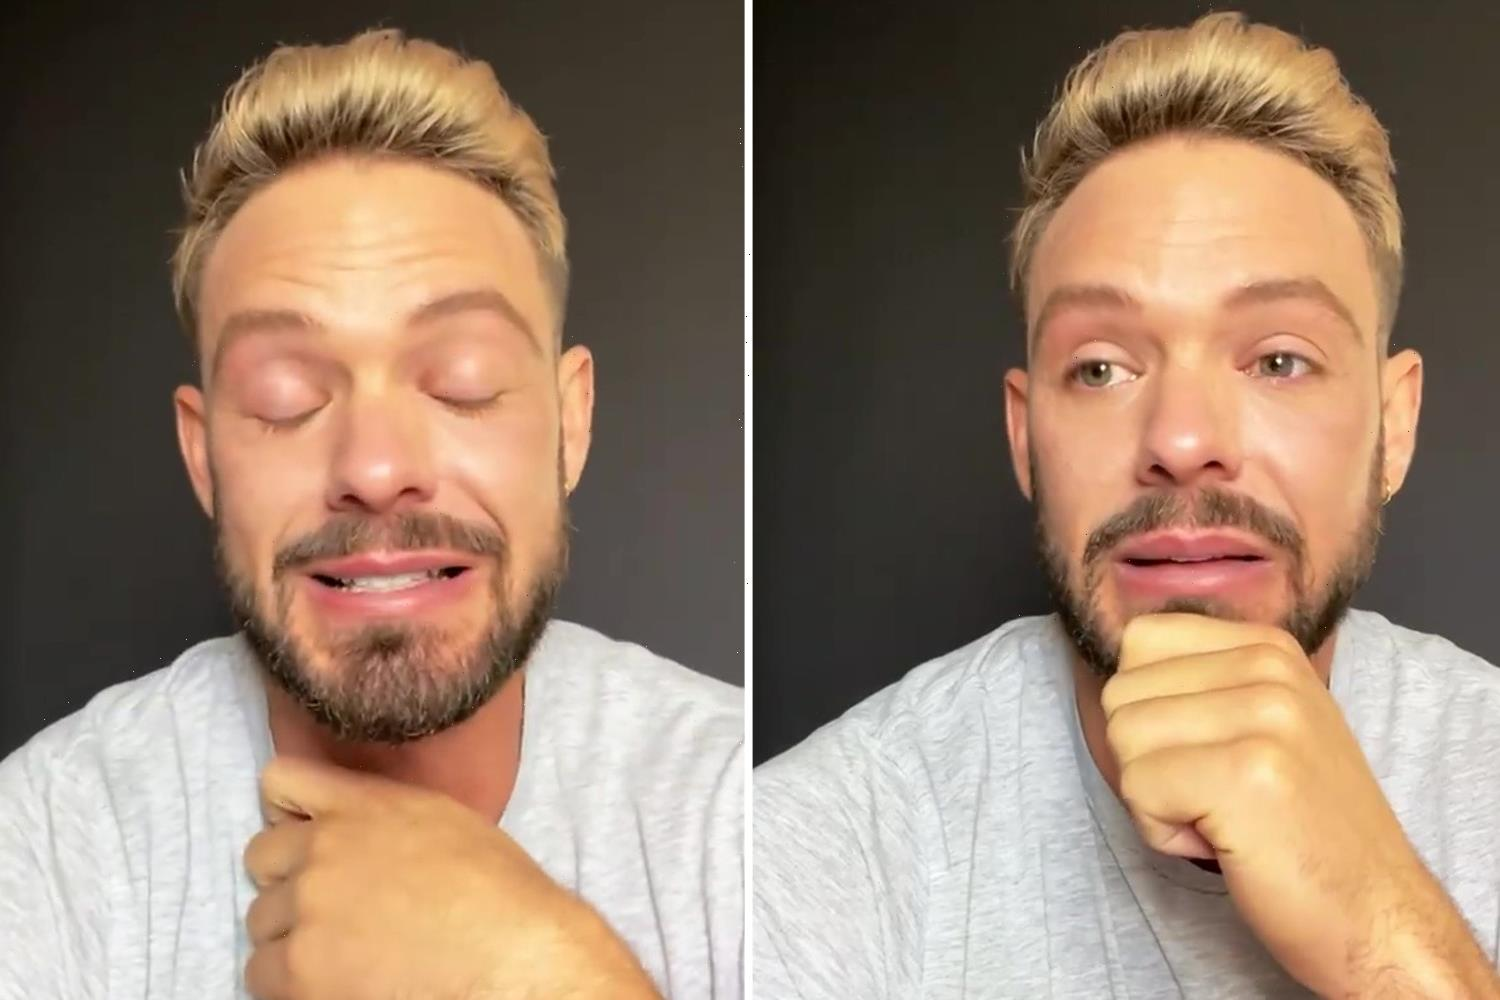 New Strictly contestant John Whaite breaks down in tears after announcing he'll dance in show's first male partnership